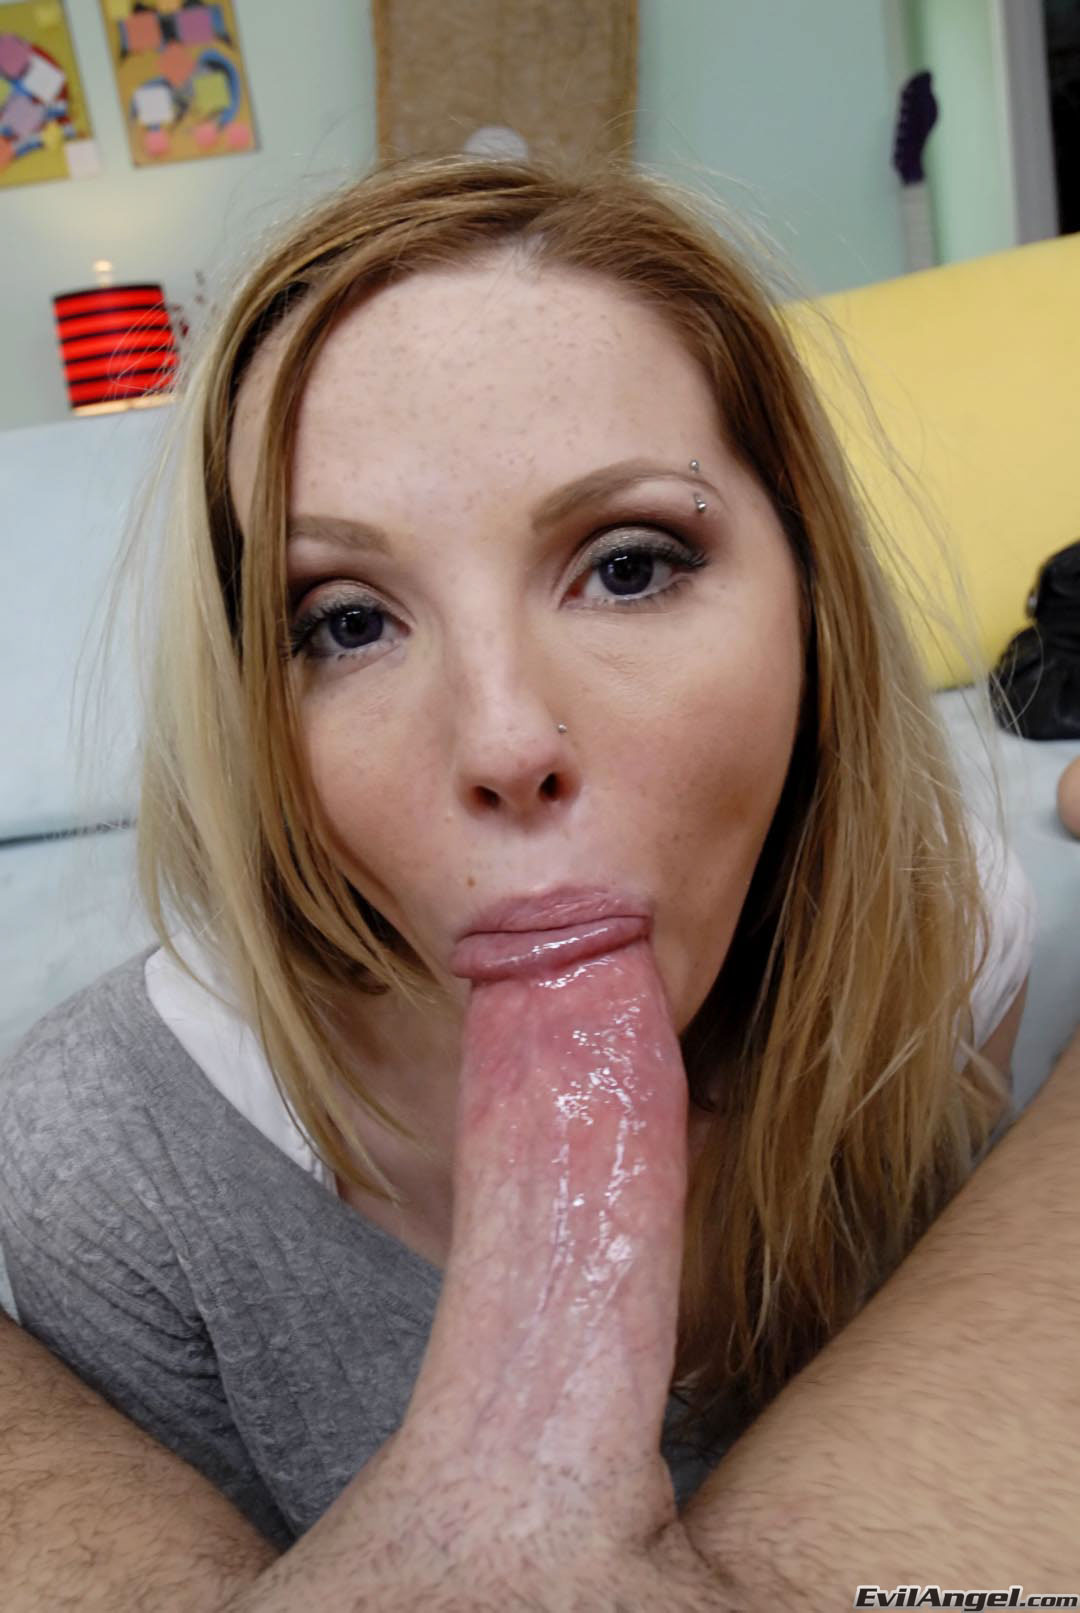 Anal frenzy nicole taylor think, that